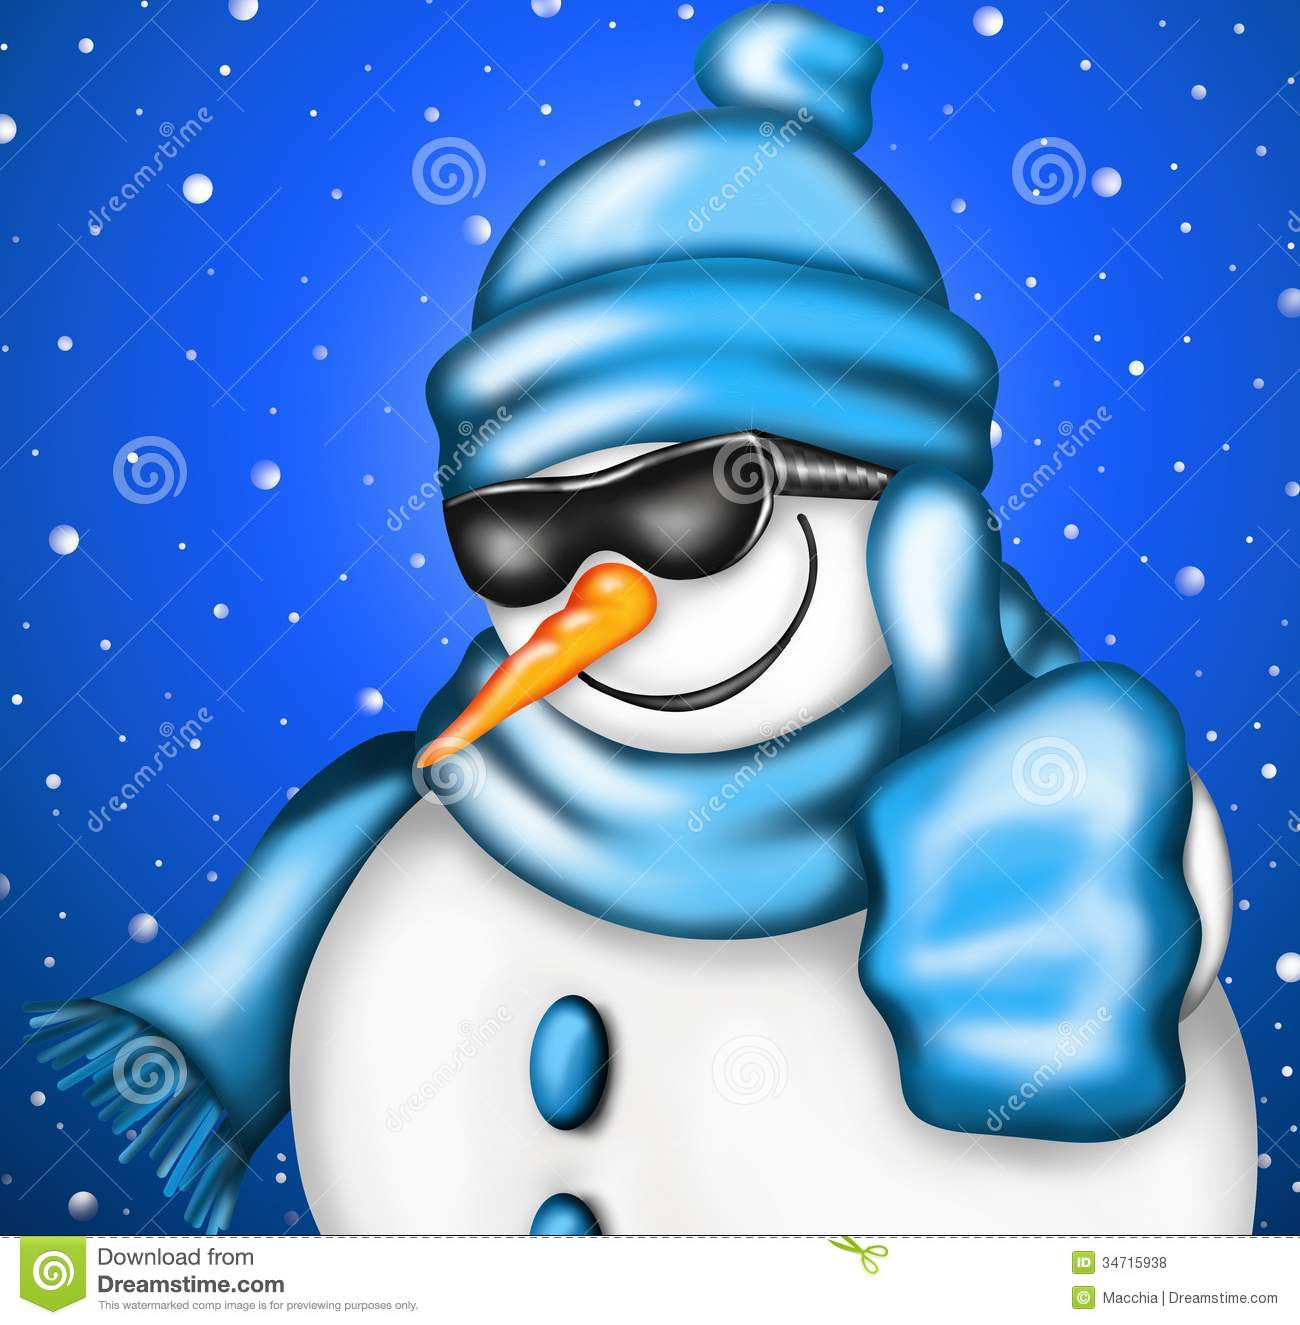 Snowman With Sunglasses Royalty Free Stock Photos - Image: 34715938